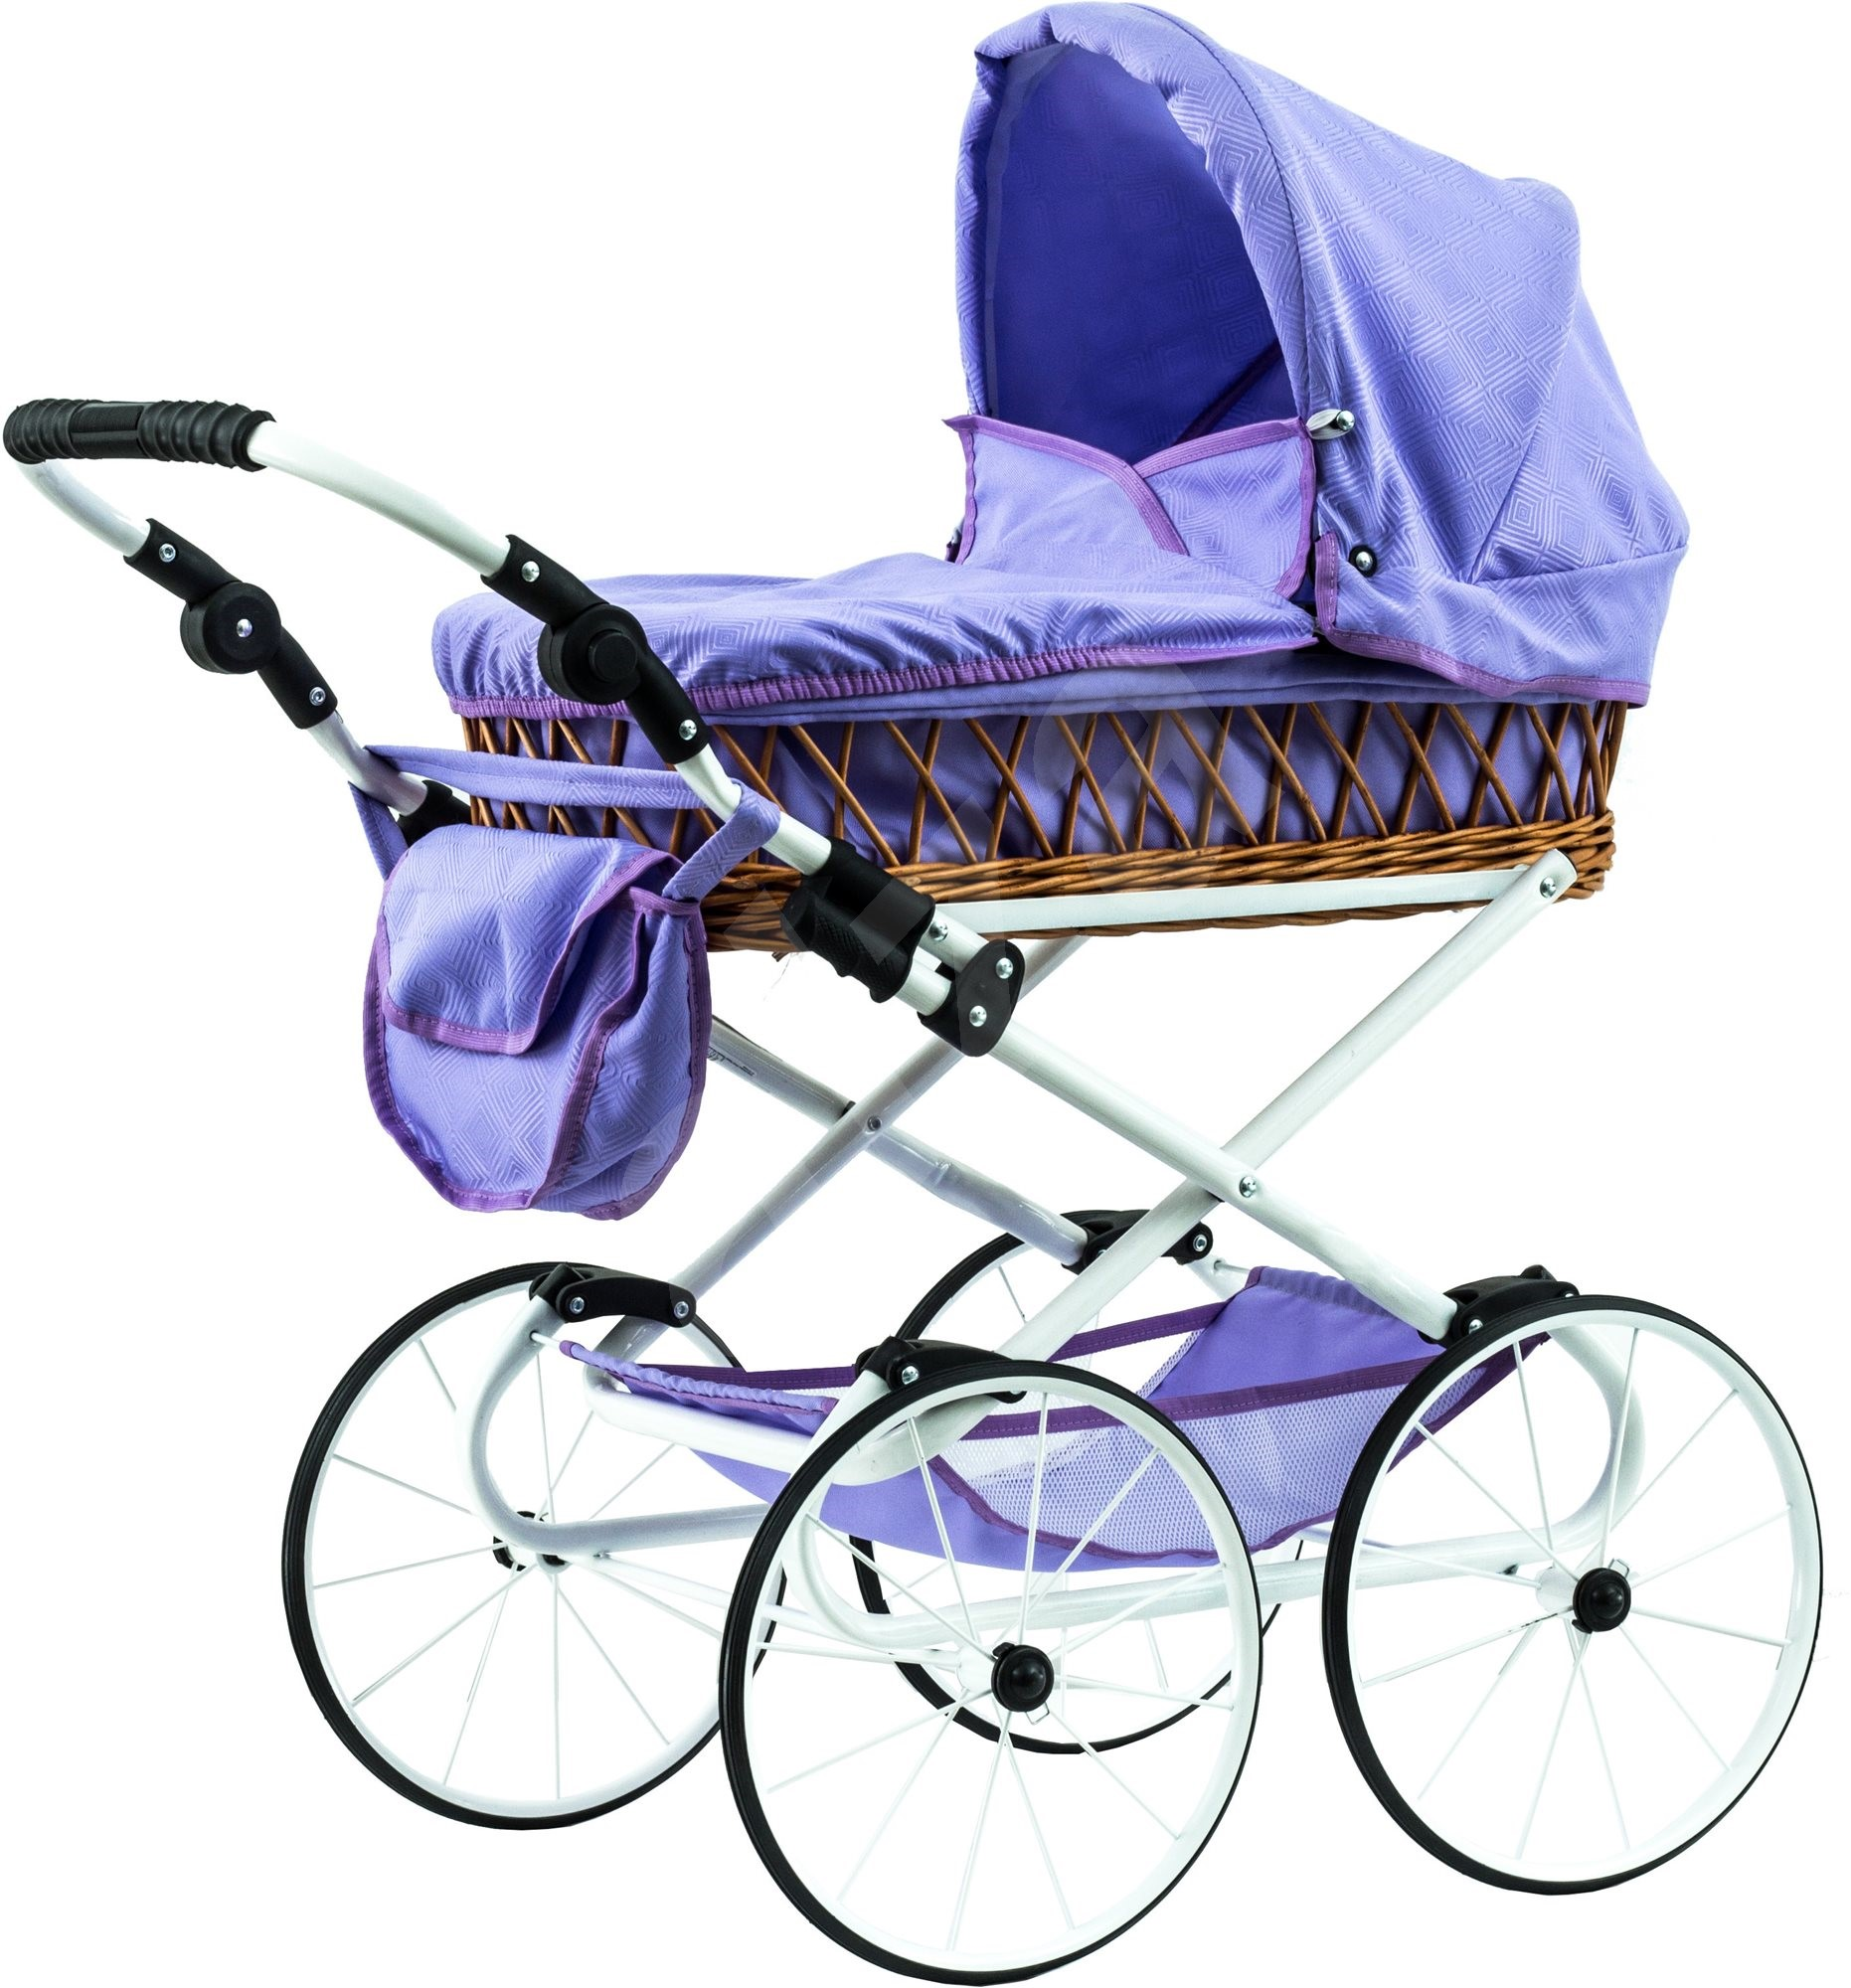 teddies stroller monika retro purple doll stroller. Black Bedroom Furniture Sets. Home Design Ideas